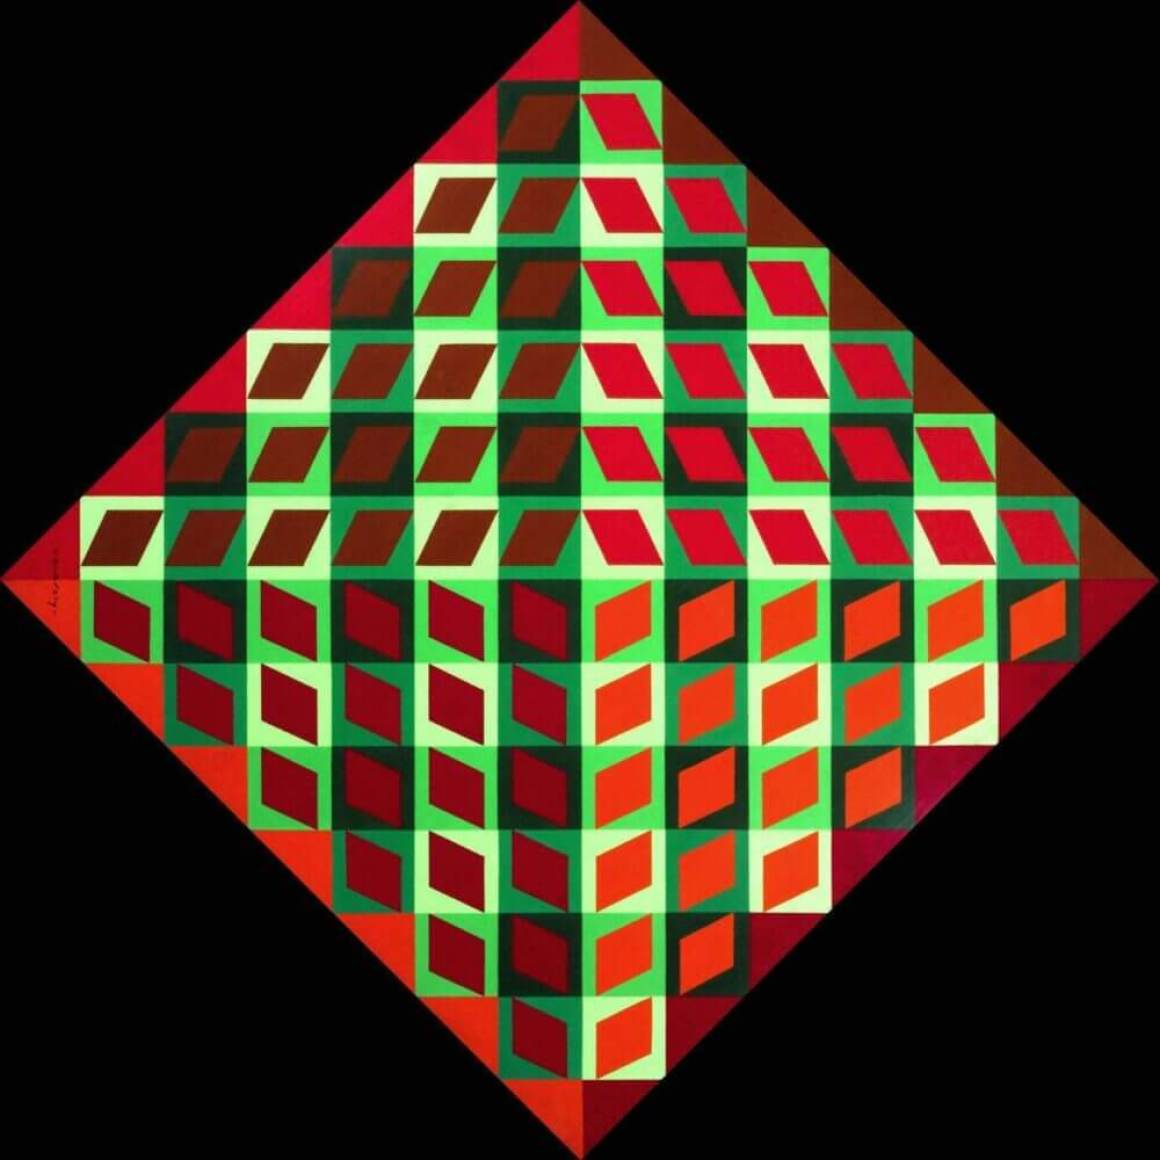 Banya 1964 Victor Vasarely 1908-1997 Purchased 1965 http://www.tate.org.uk/art/work/T00753